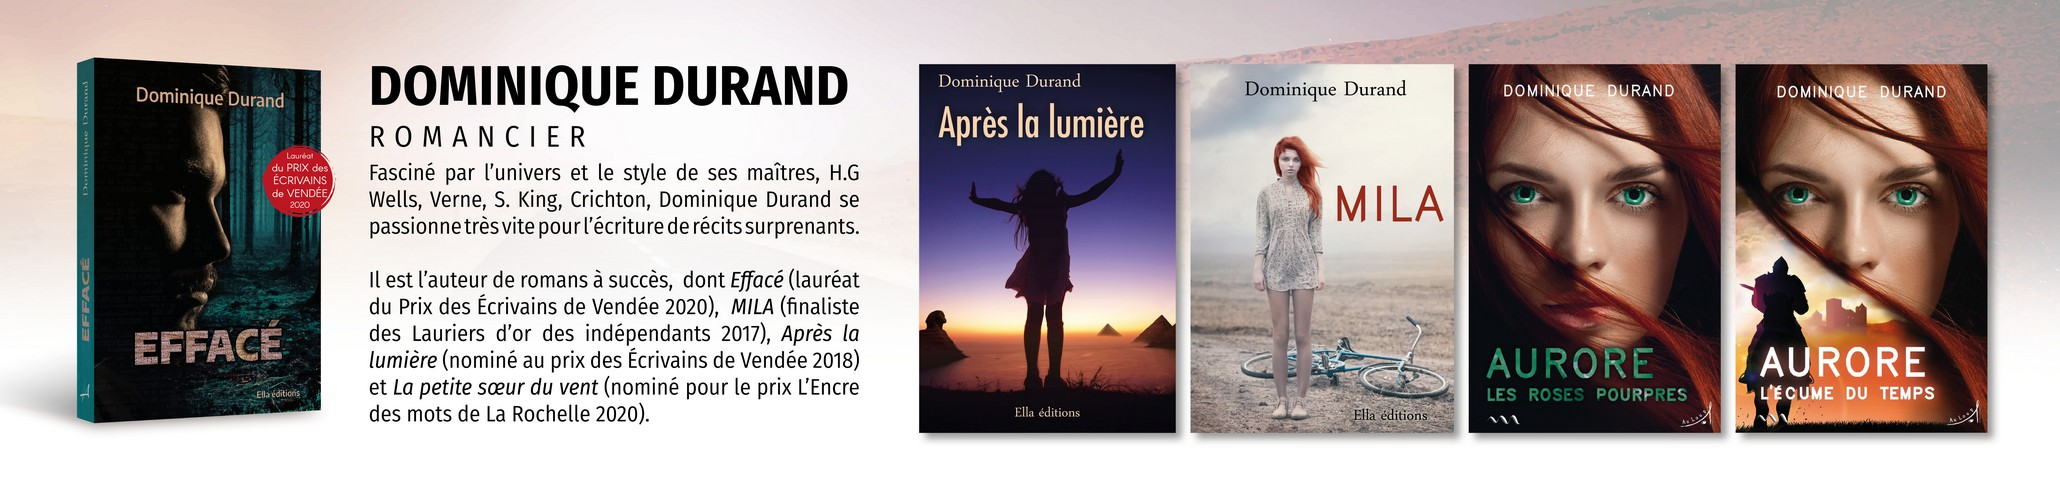 Banniere Dominique Durand Romancier